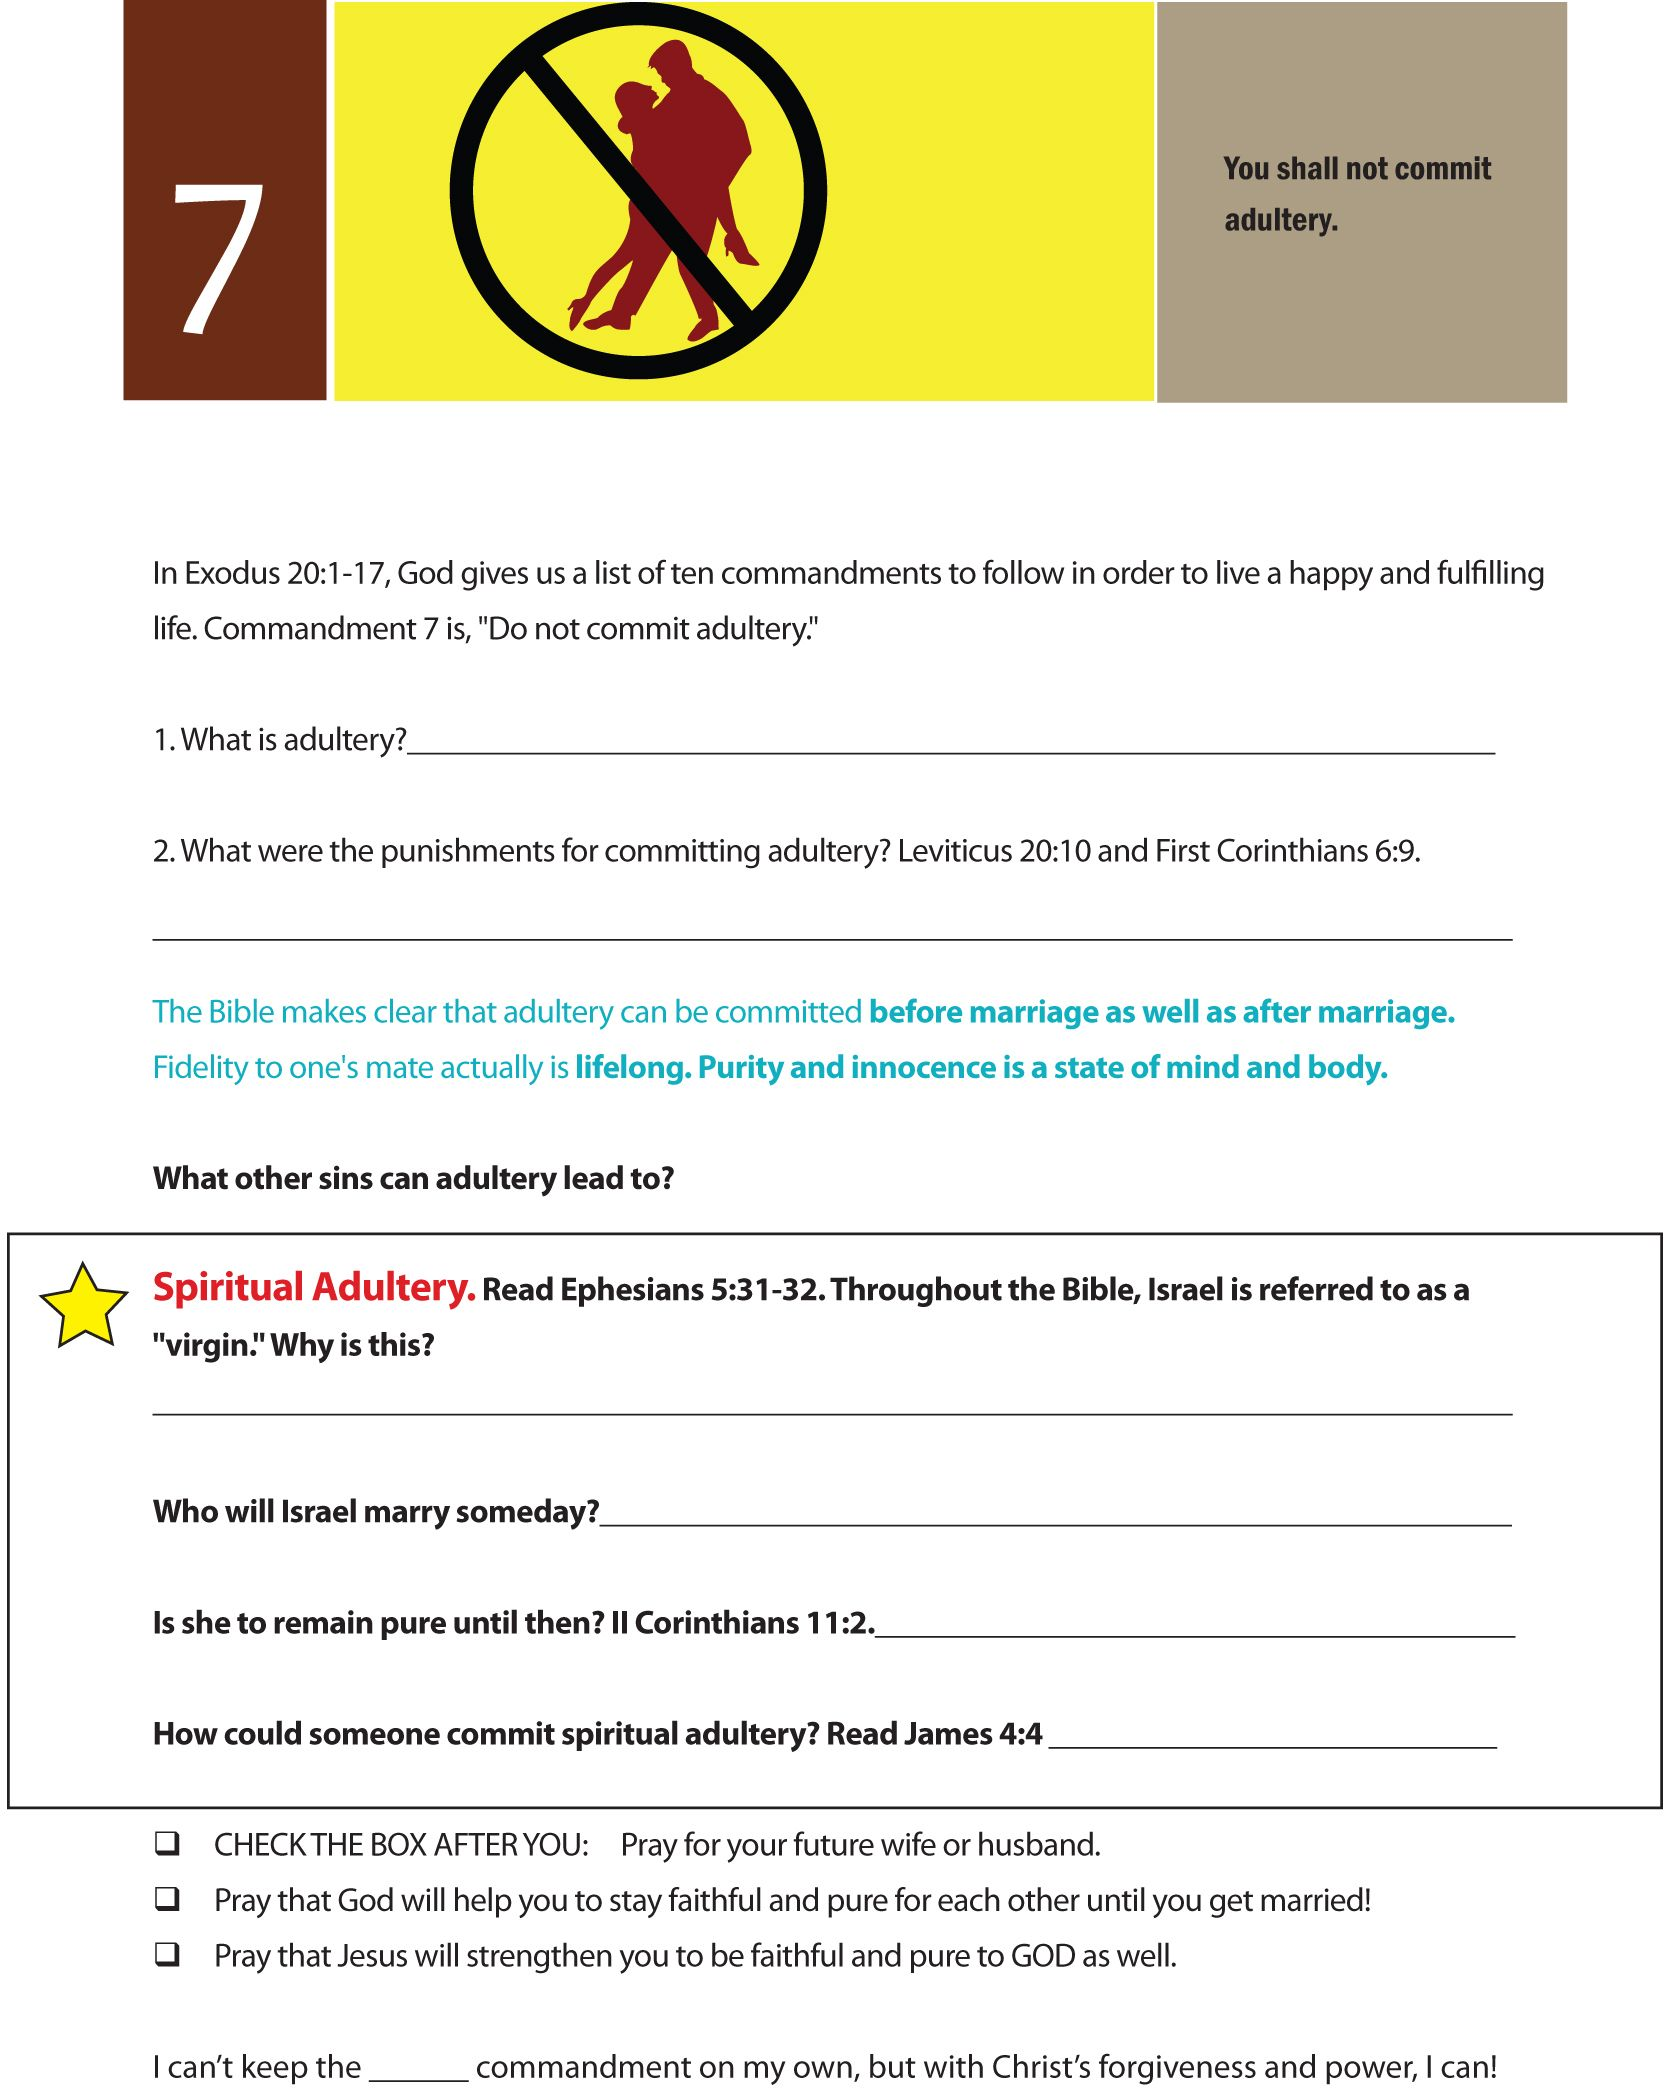 Worksheet To Teach The Seventh Of The 10 Commandments Do